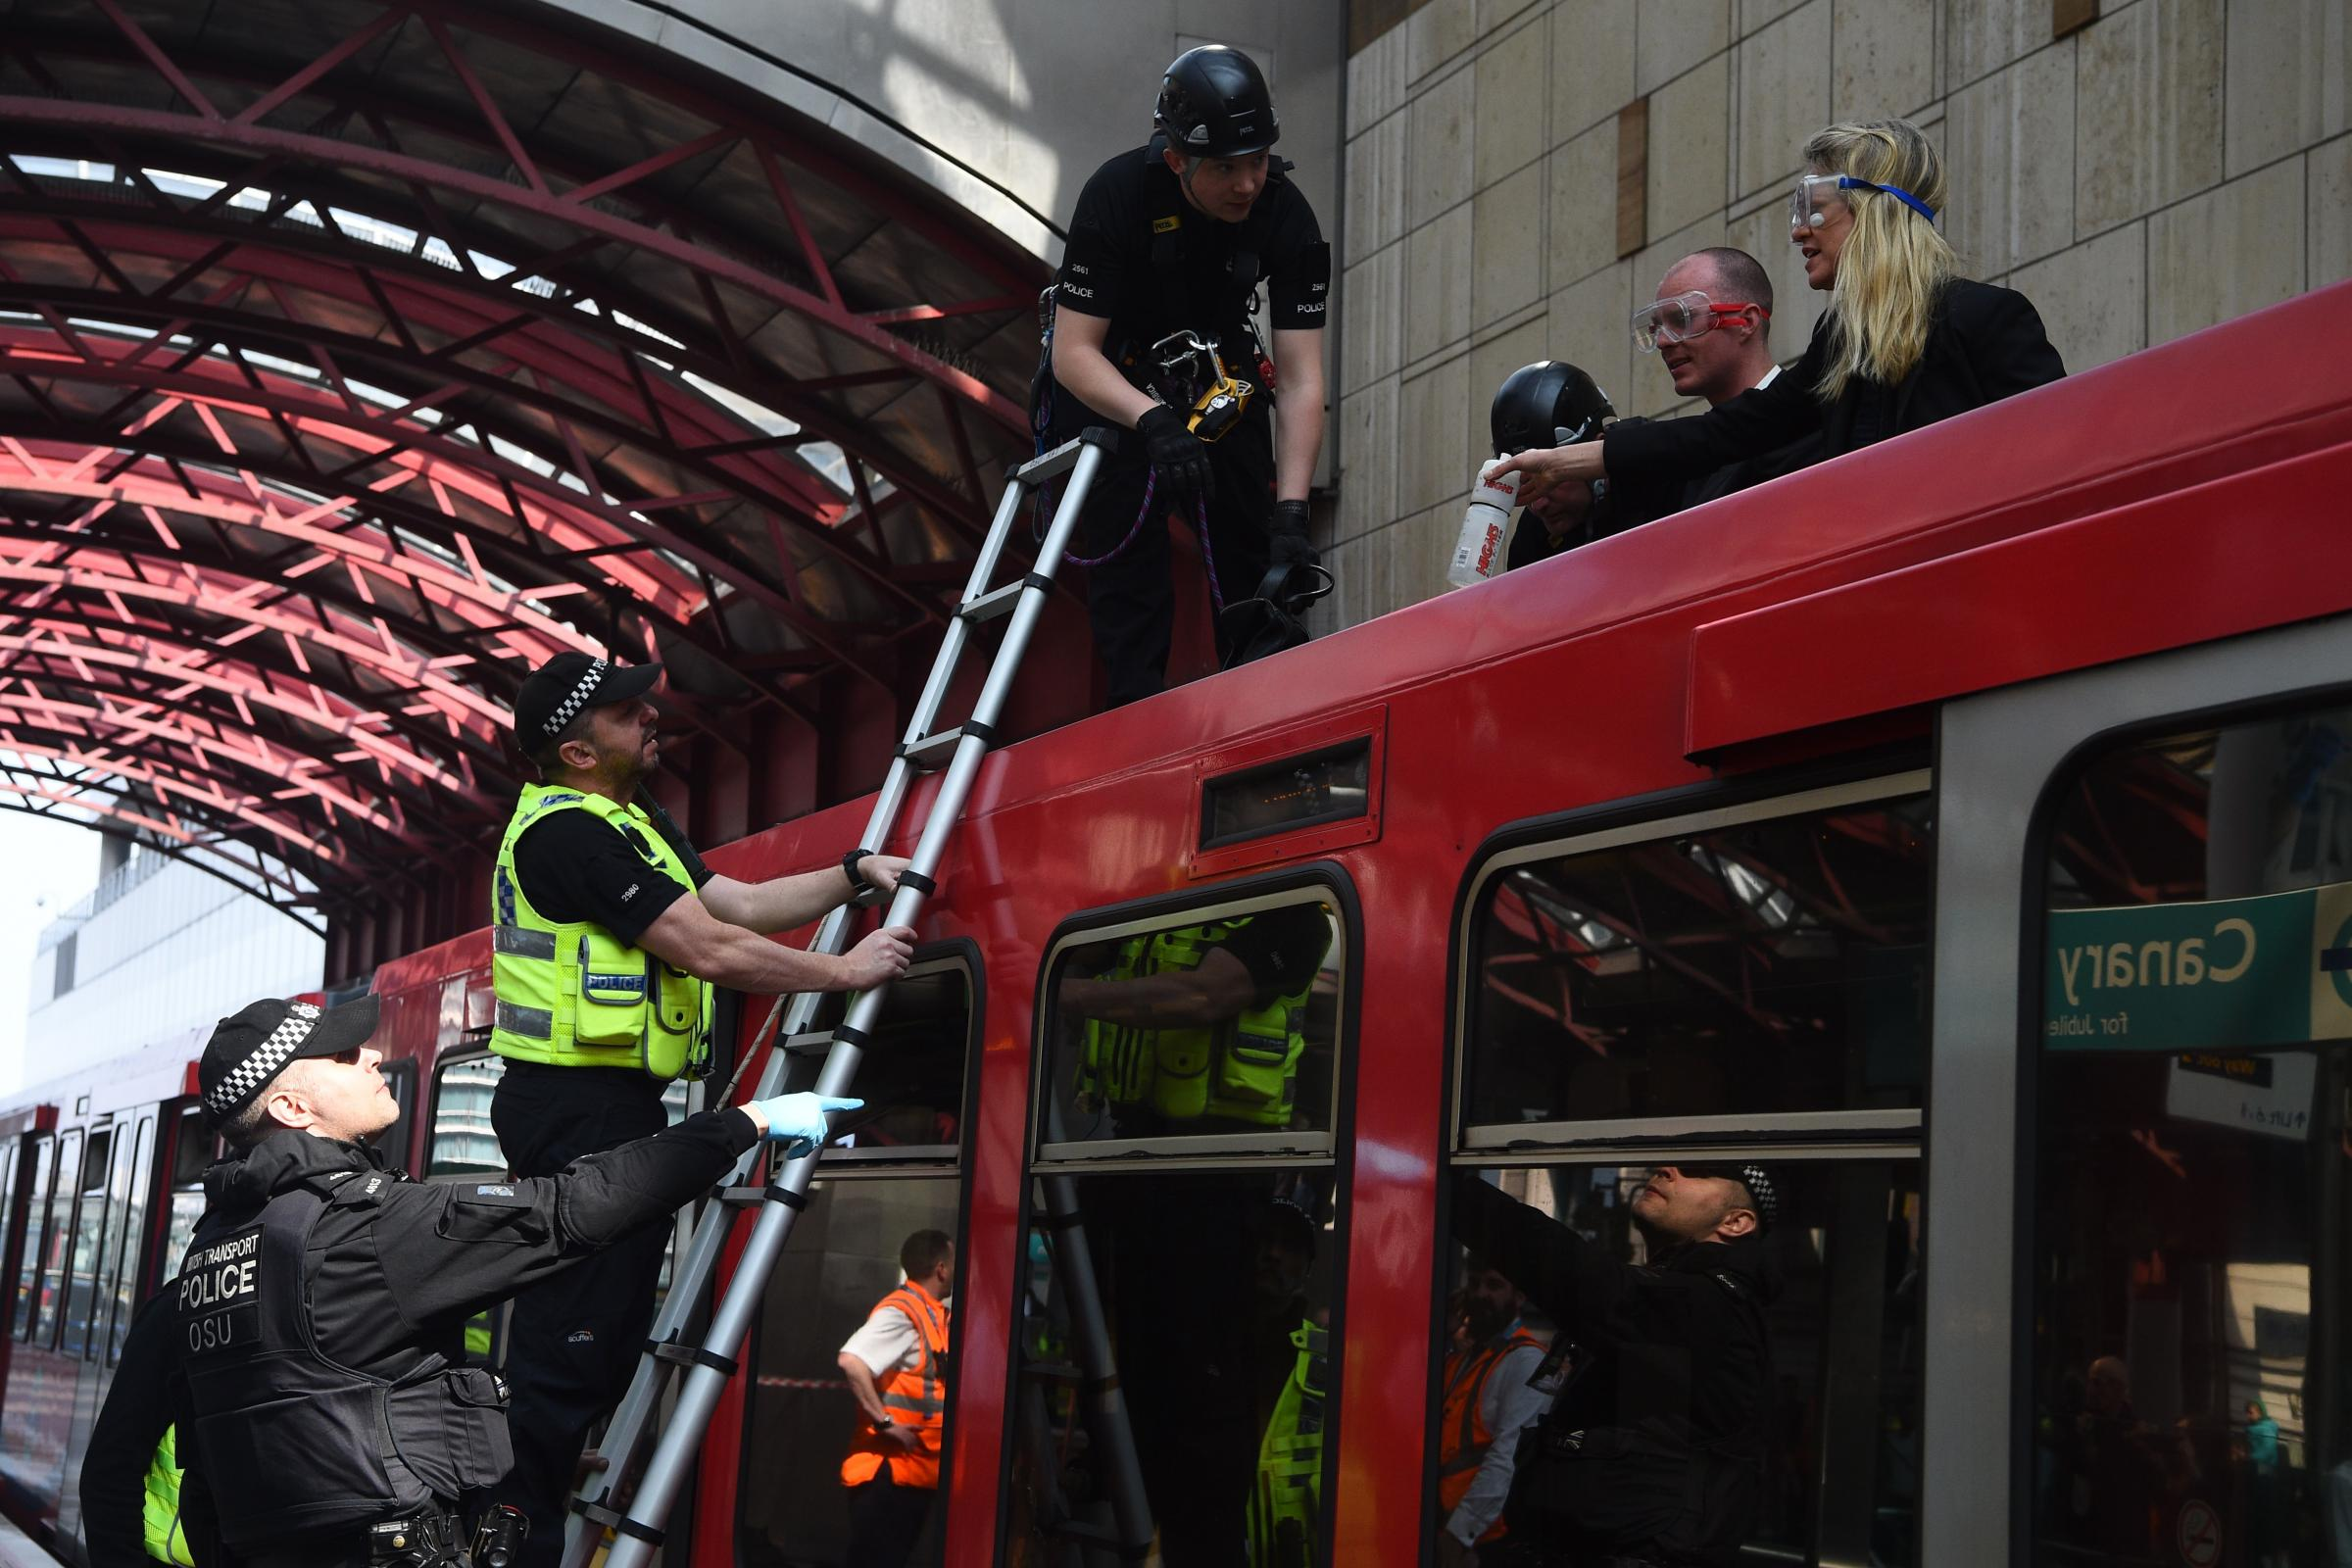 Police remove climate change activists who climbed on top of a train